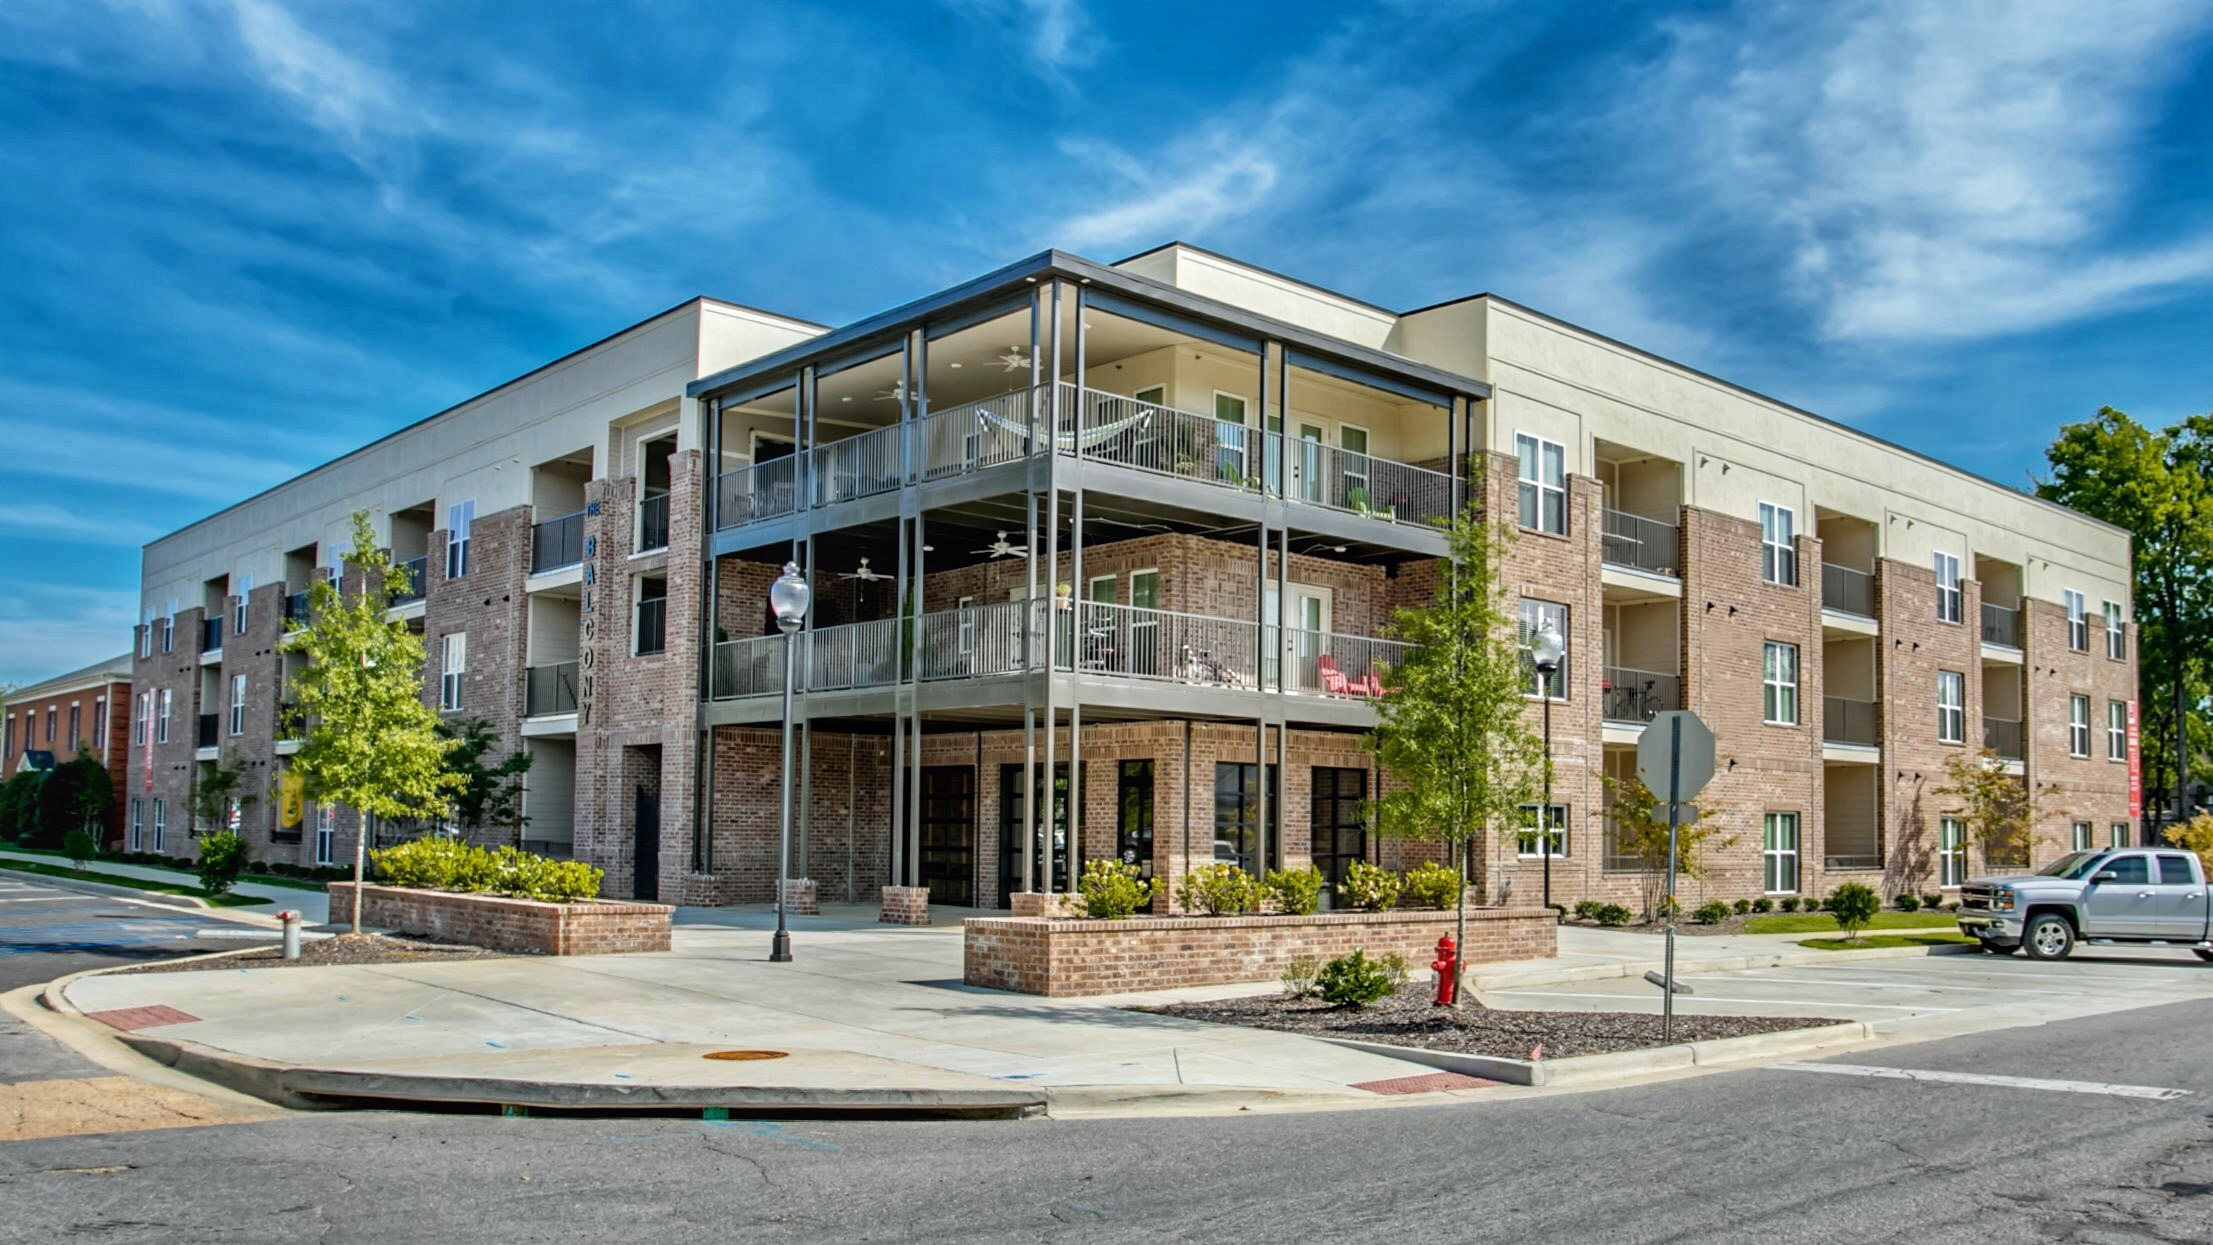 Exterior of The Balcony Apartments in Tuscaloosa, AL